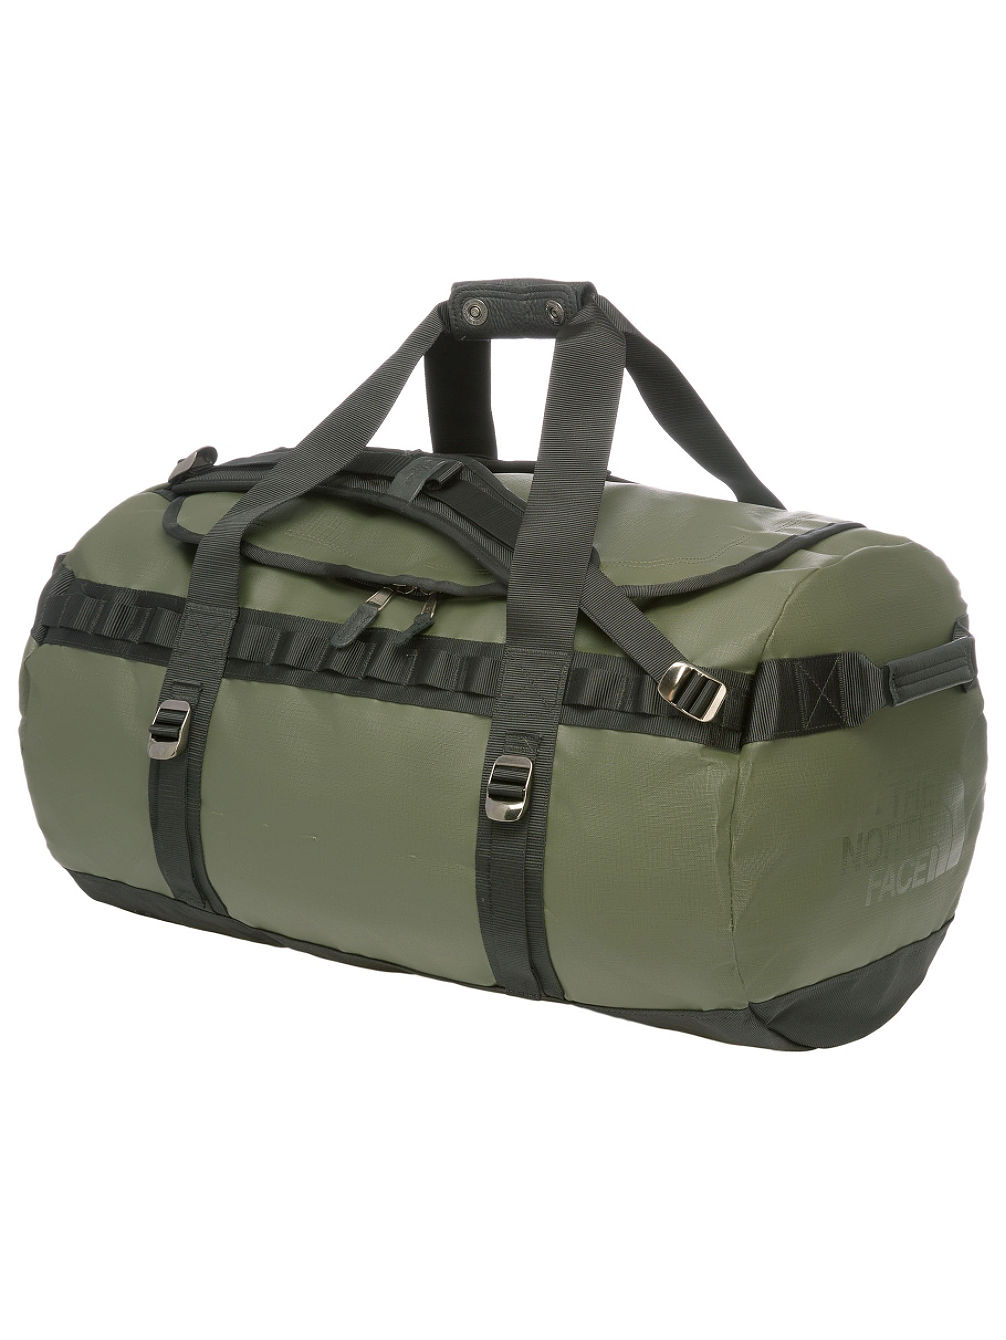 379ee839205 Buy THE NORTH FACE Base Camp Duffel - M Special Edition online at ...